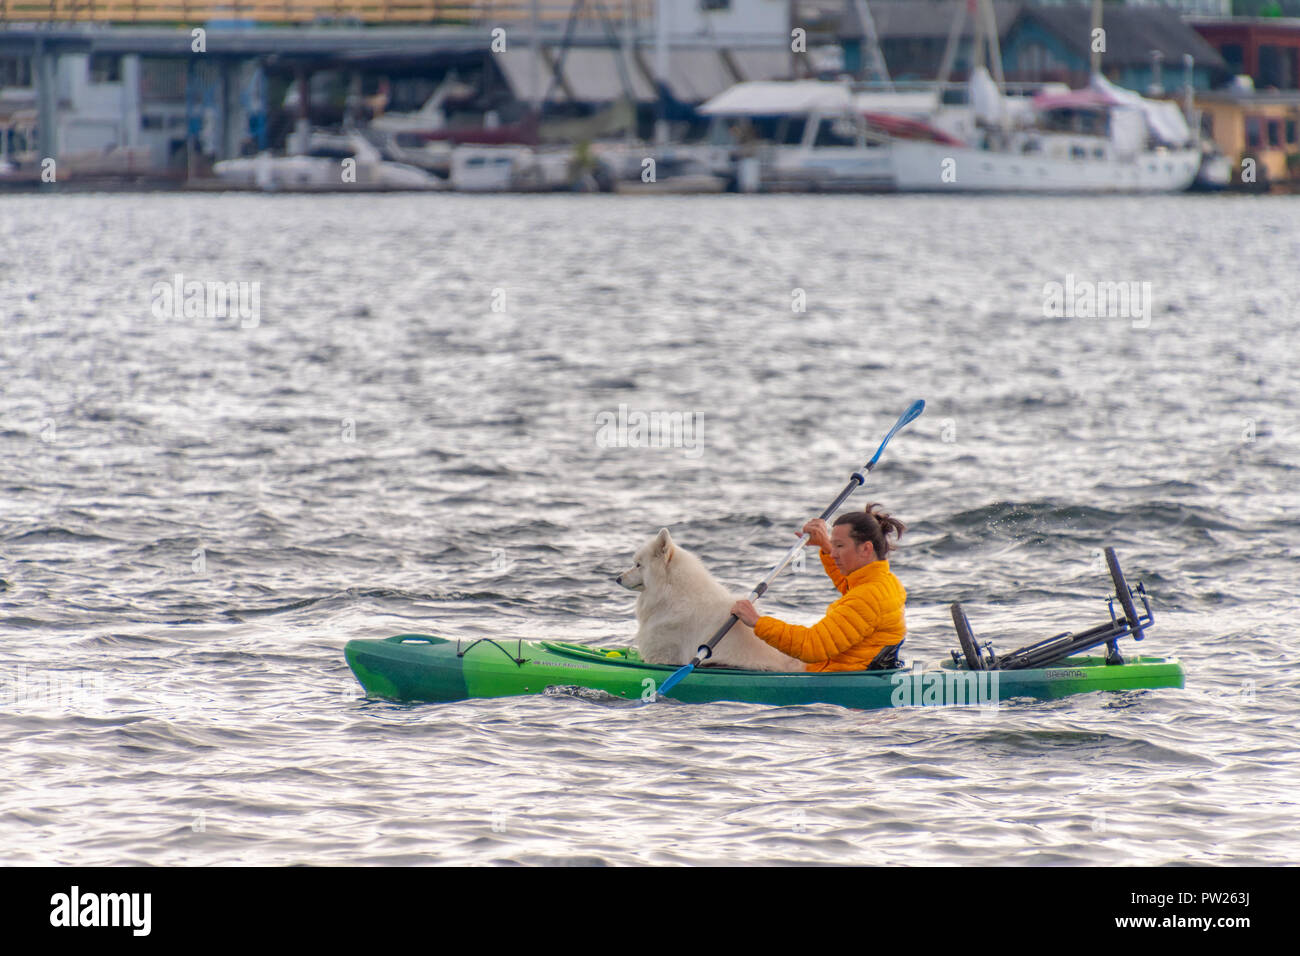 TUESDAY, MAY 8, 2018, SEATTLE, WA: A man kayaks across Seattle's Lake Union with his dog at sunset. - Stock Image